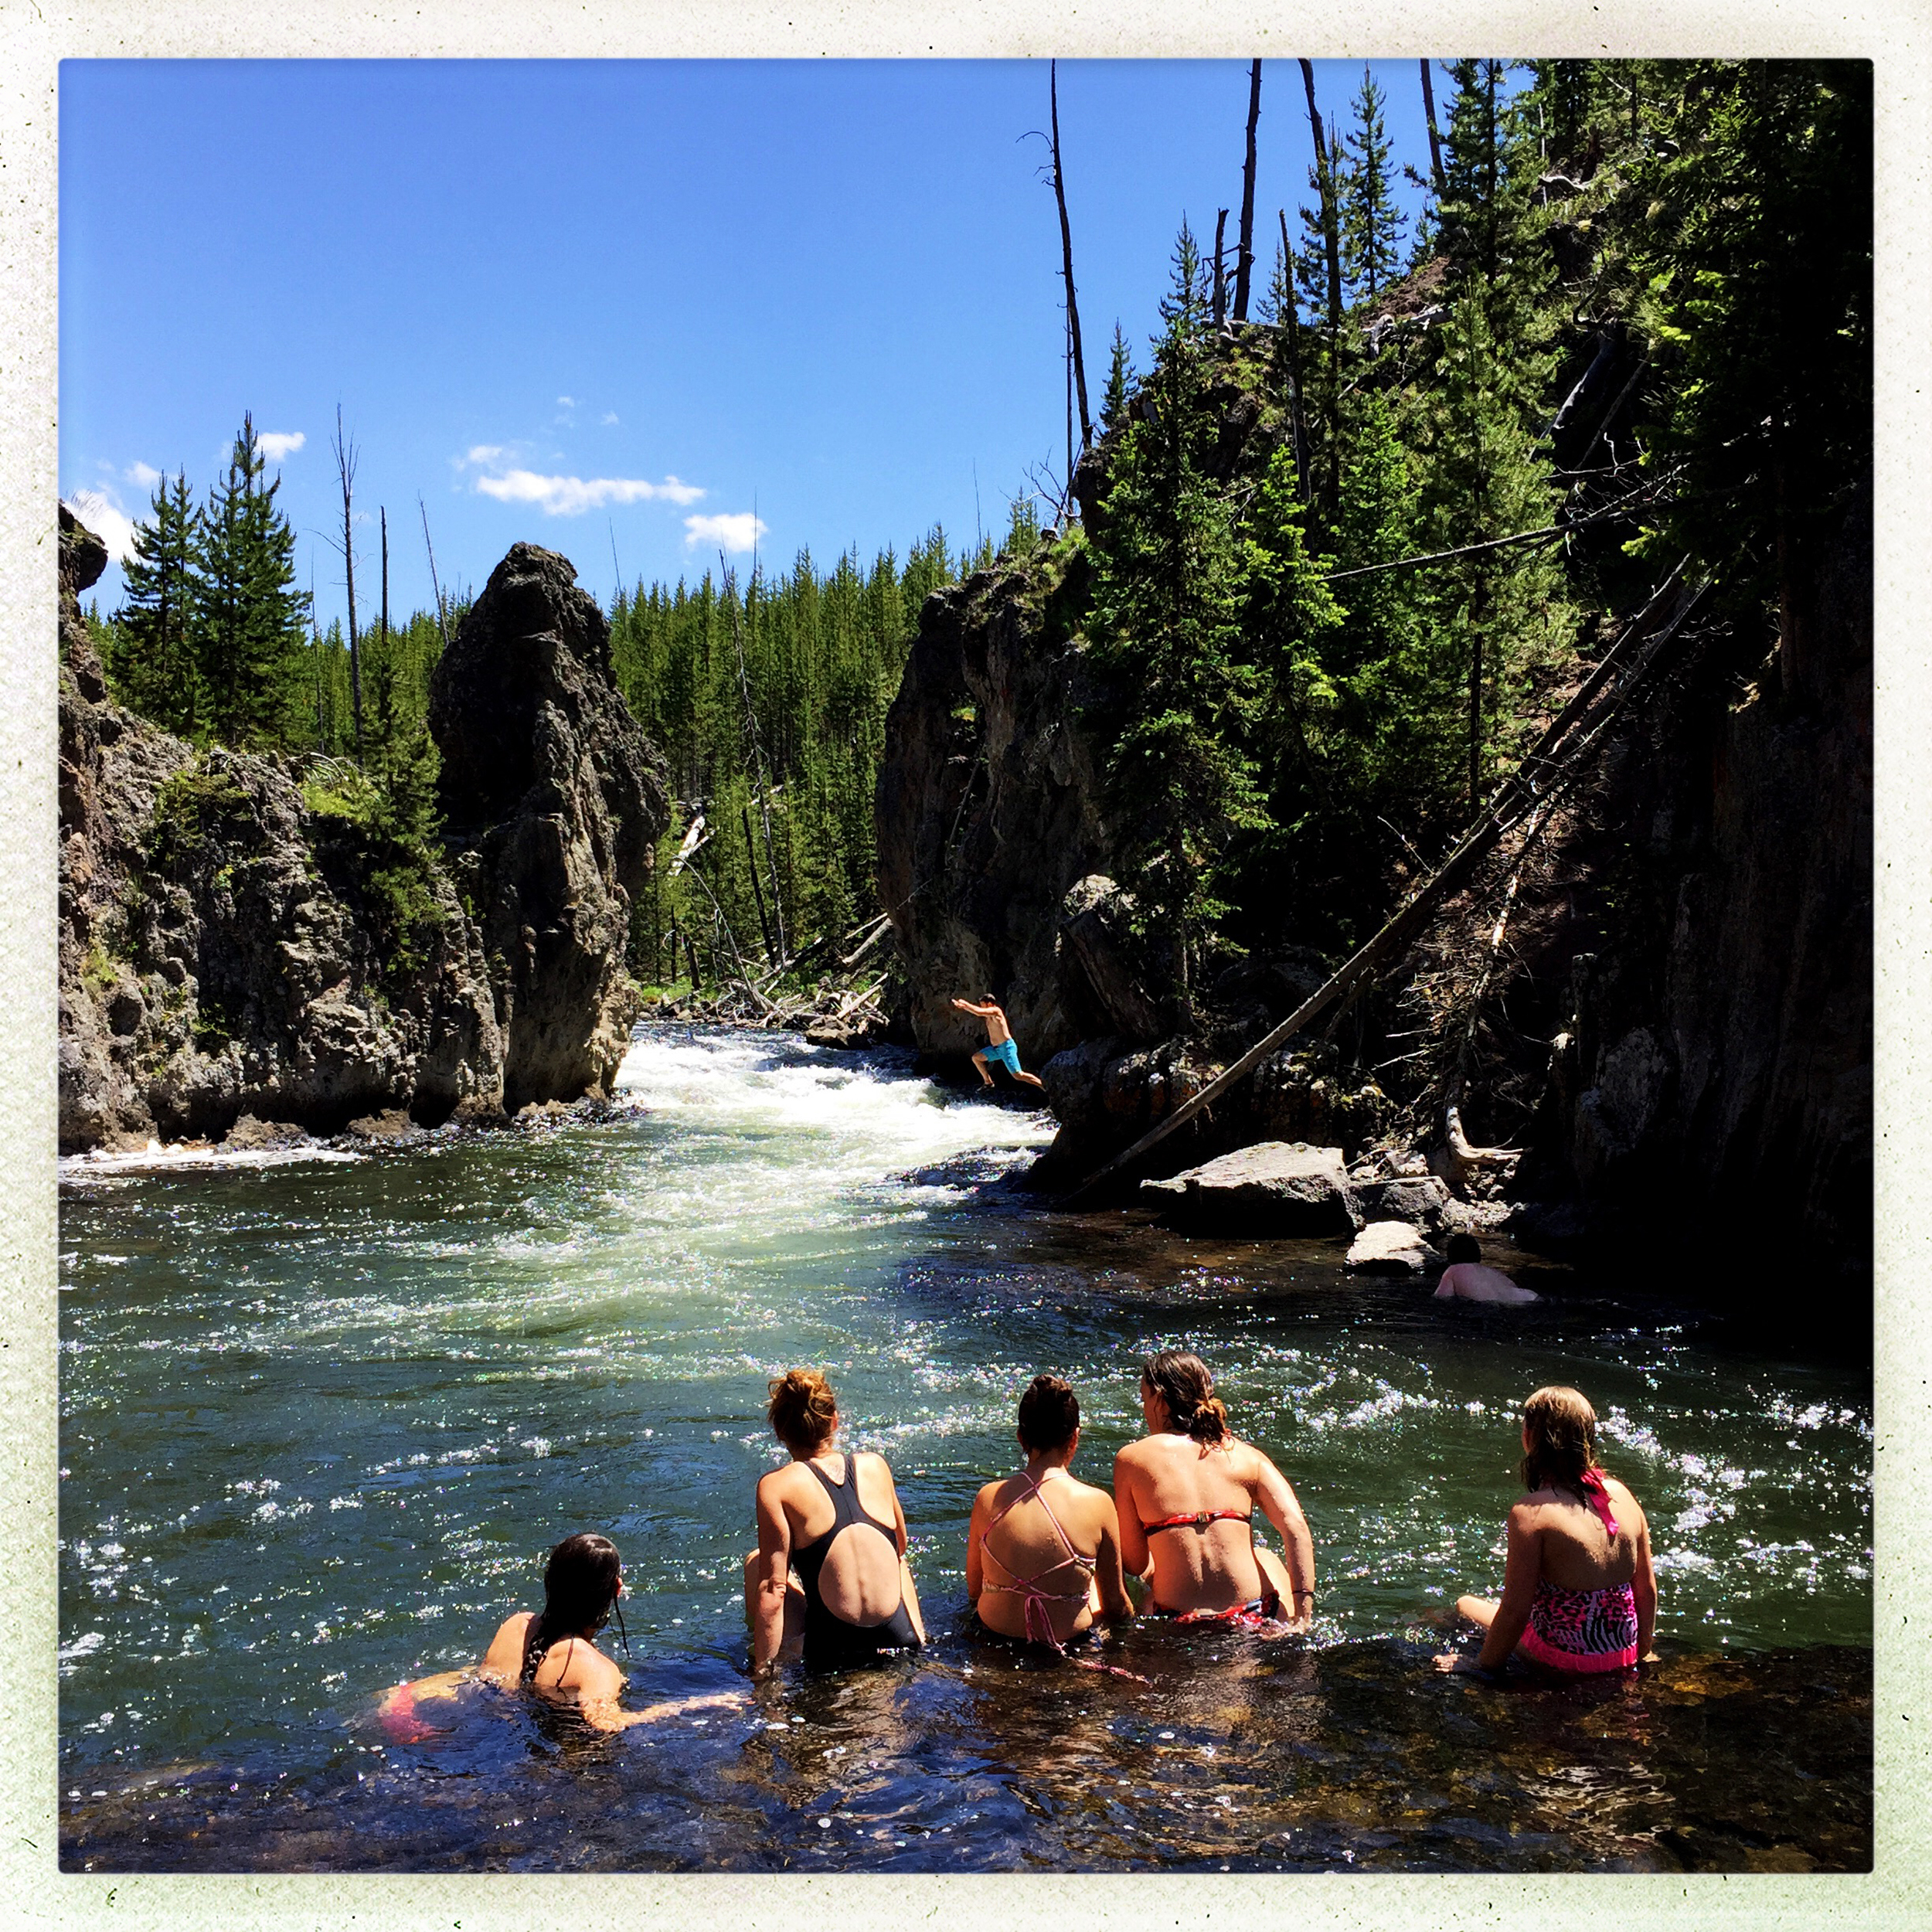 YELLOWSTONE NATIONAL PARK, WY - JUNE 19: Visitors cool off in t